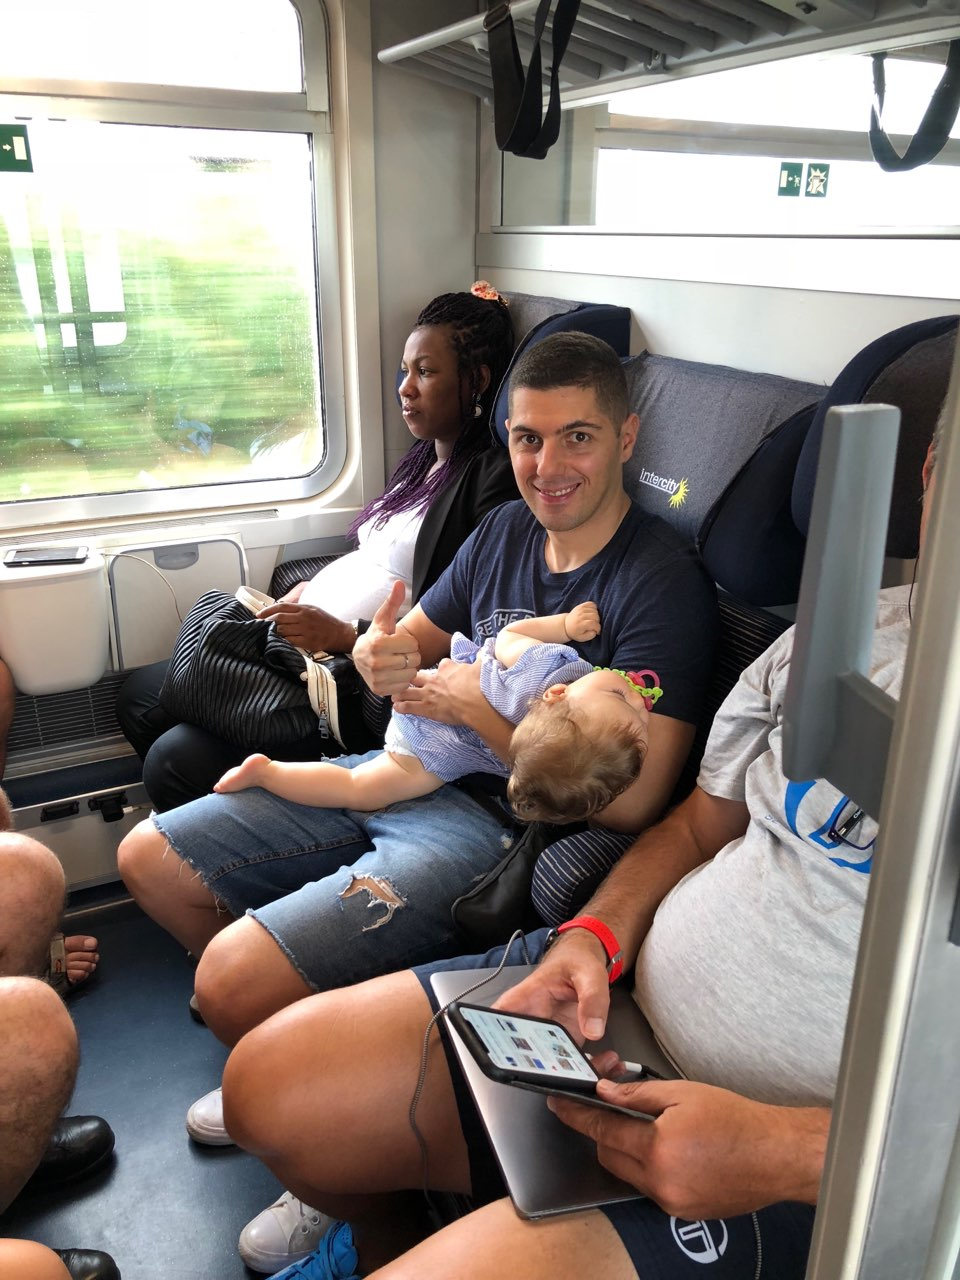 Father, baby girl and passengers on a train in Italy